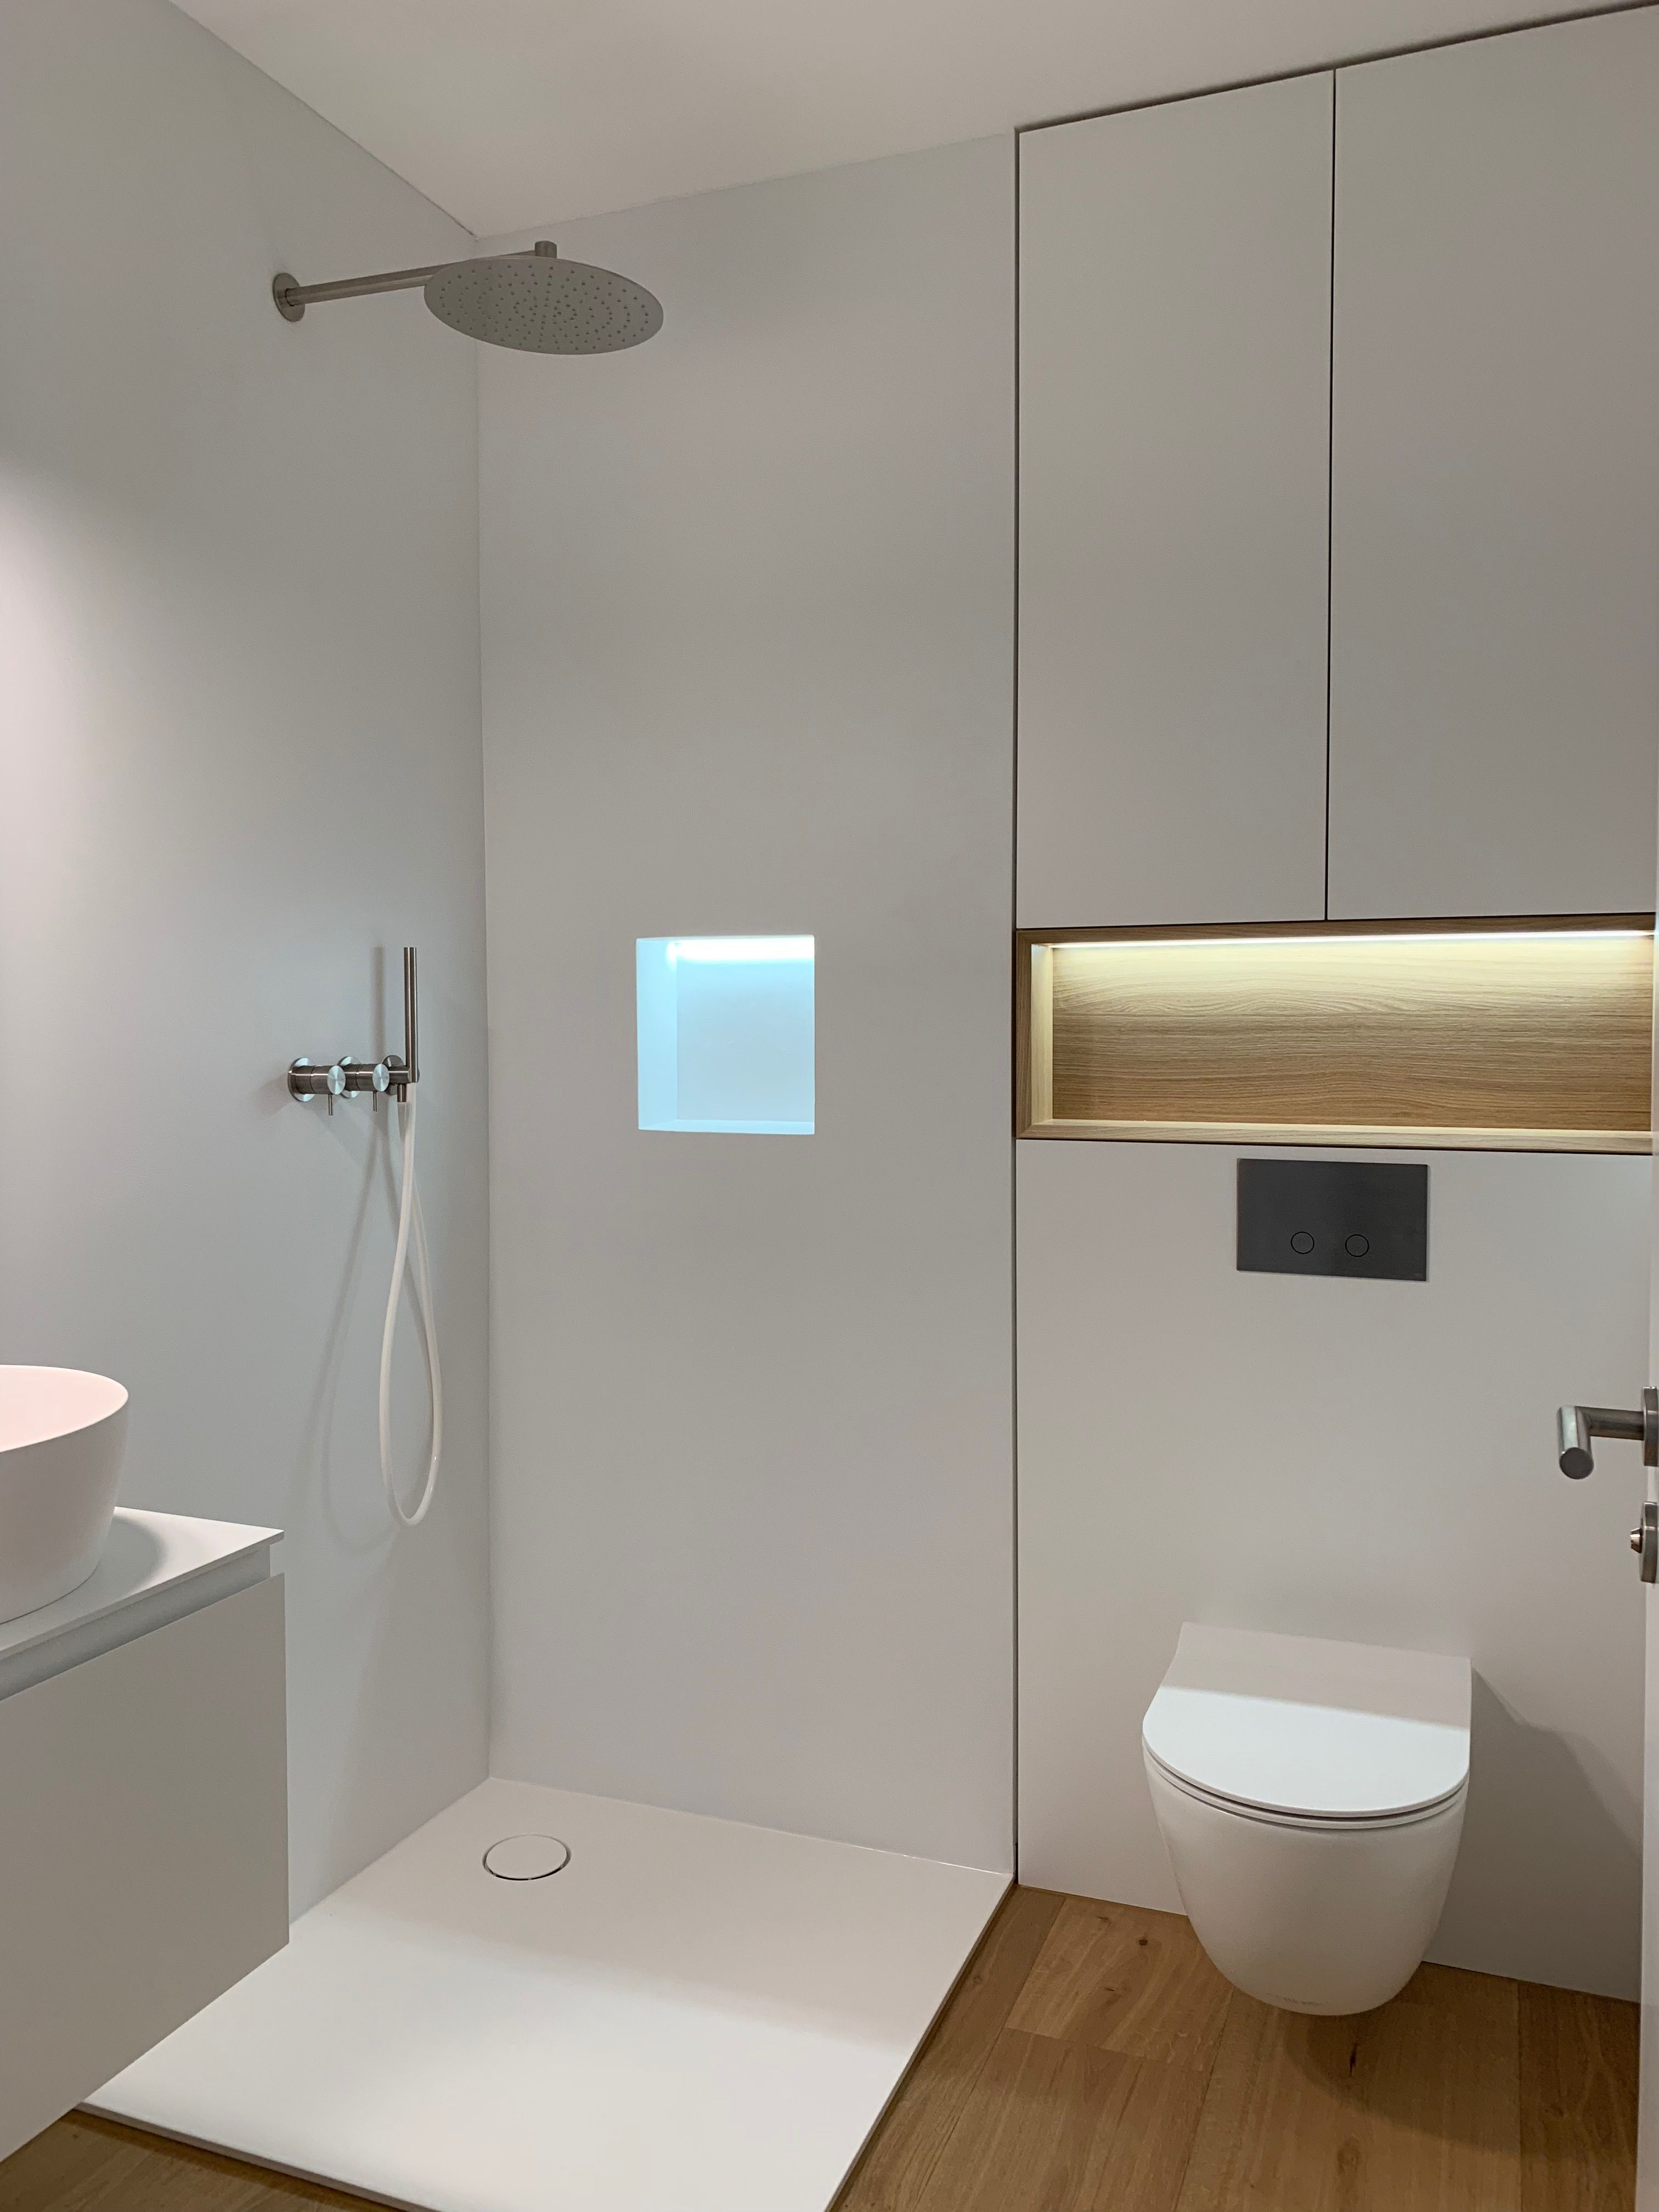 Umbau Innenarchitektur Privat By Room42 Ch Minimalistische Badgestaltung Minimalistisches Badezimmer Bad Styling